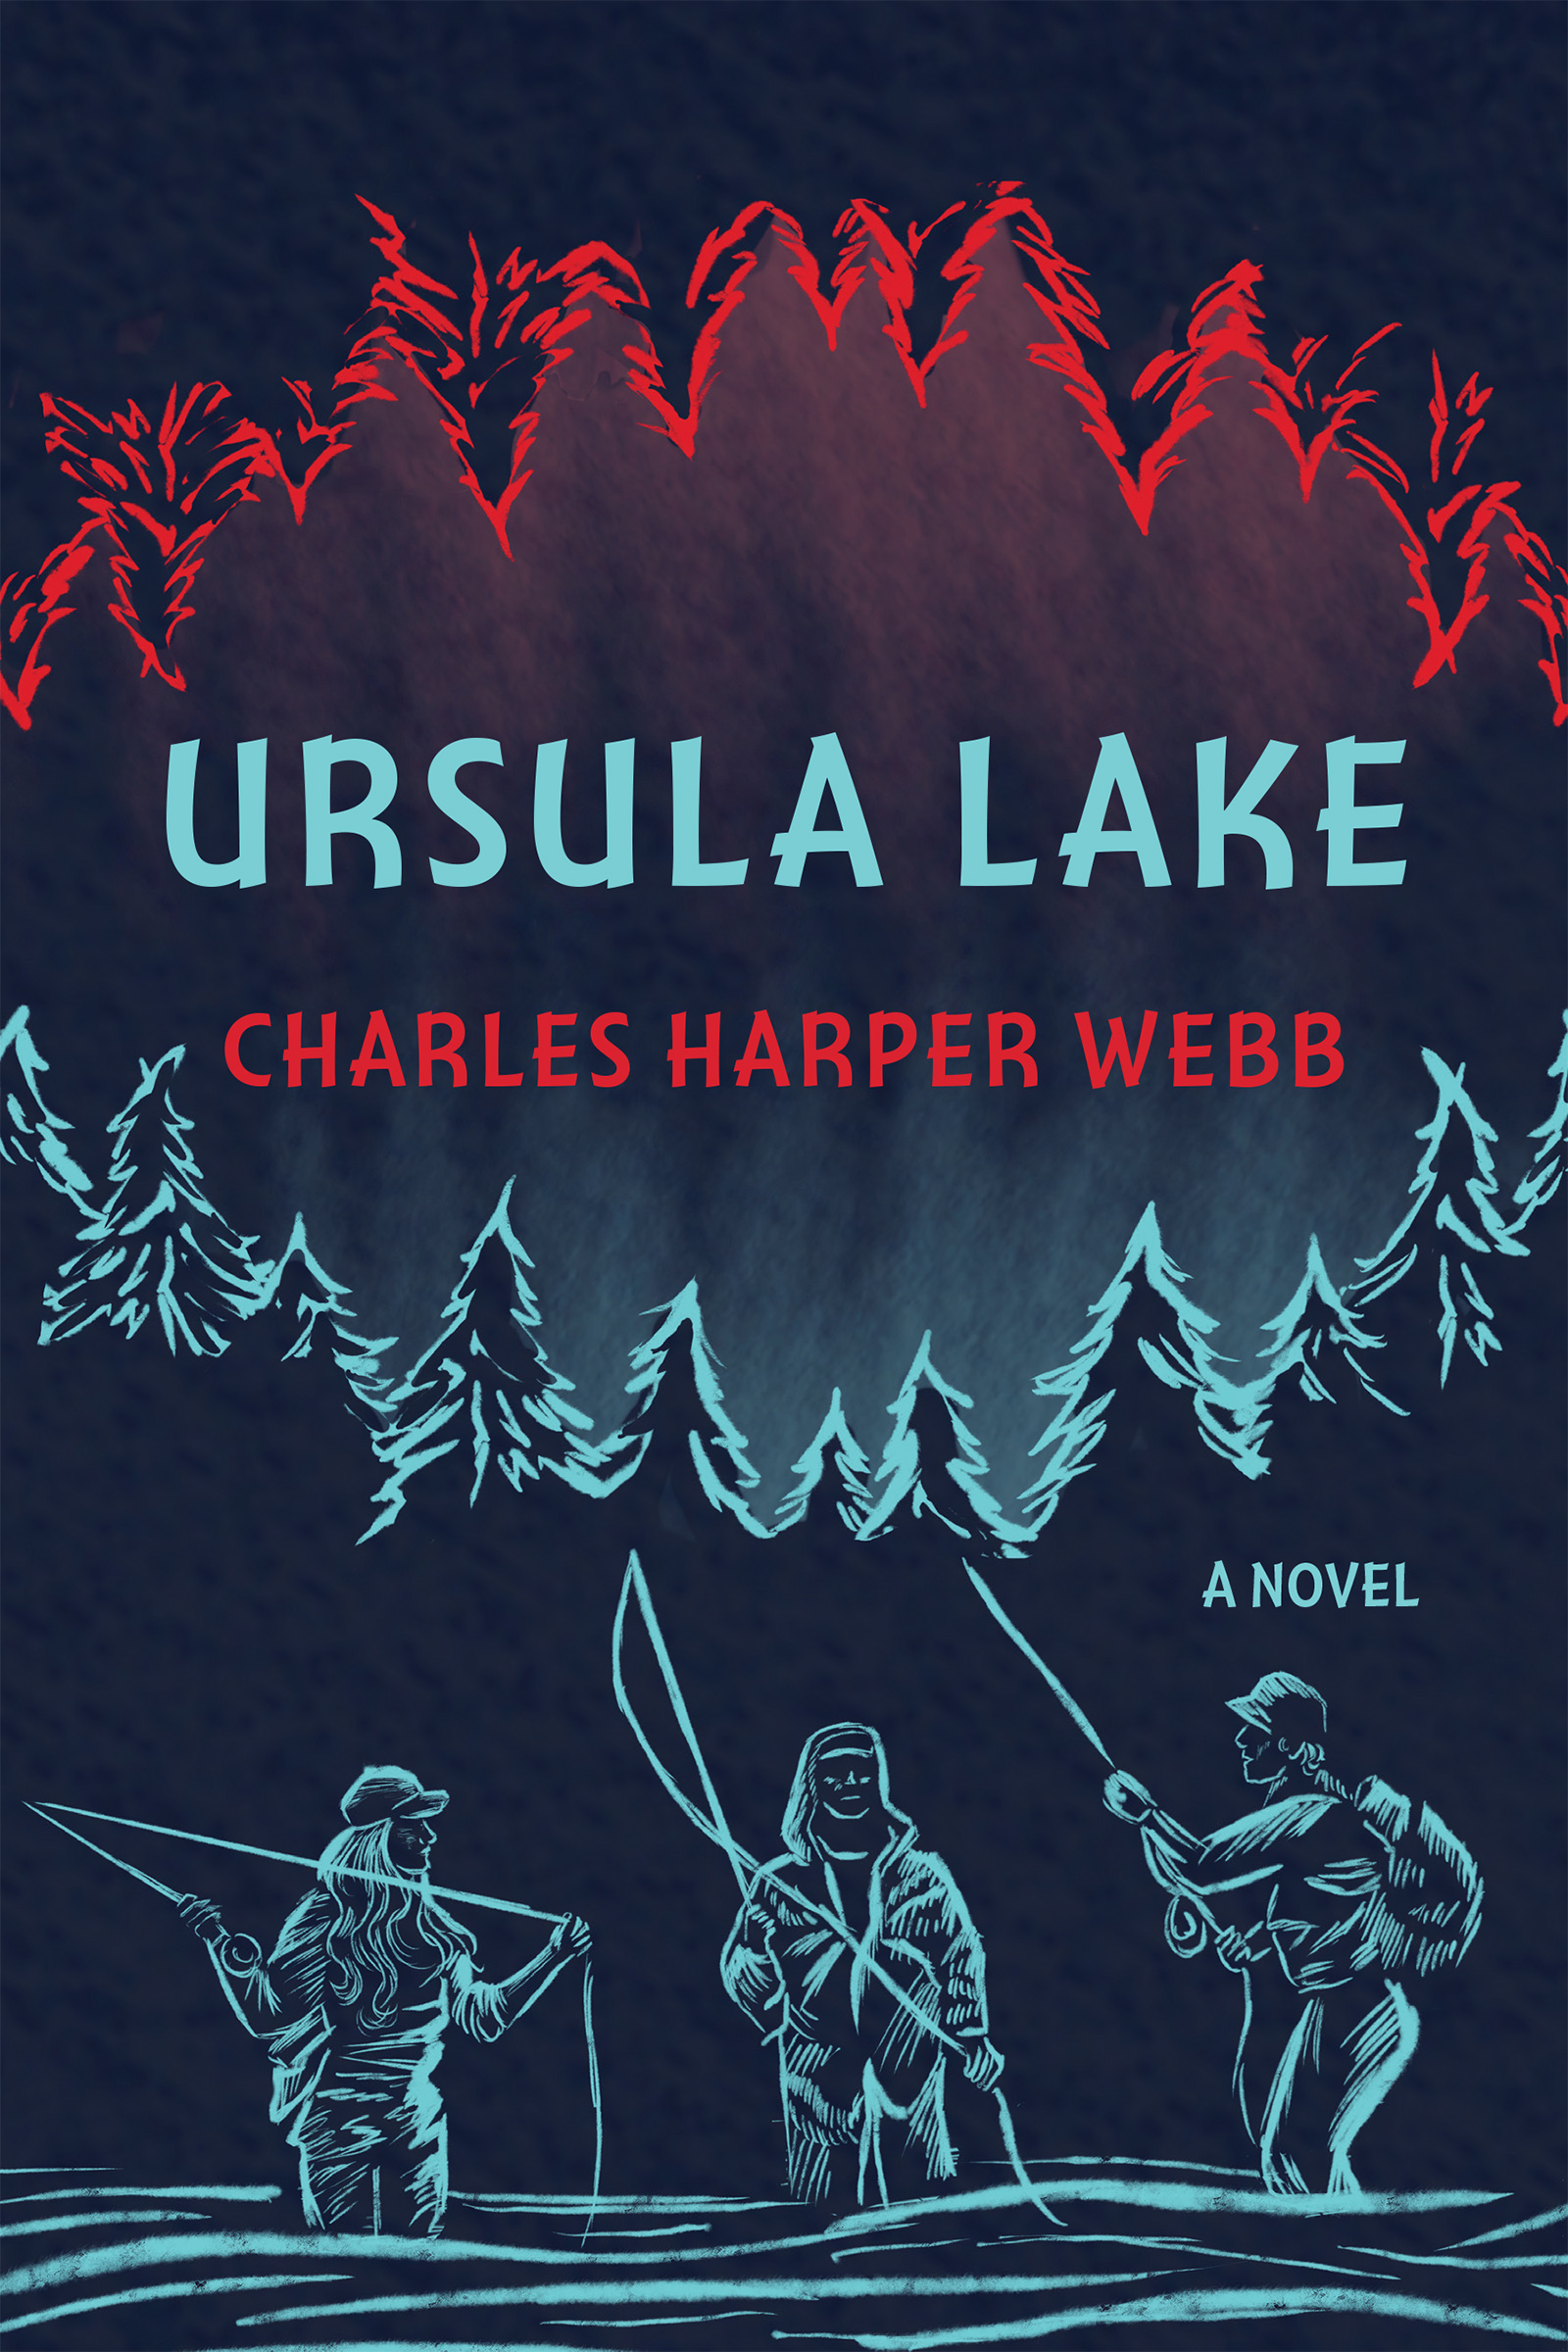 """A dark blue background with bright blue outlines of trees and people fishing in water, light blue text says """"Ursula Lake"""" and red text reads Charles Harper Webb, lower blue text says """"A Novel"""""""